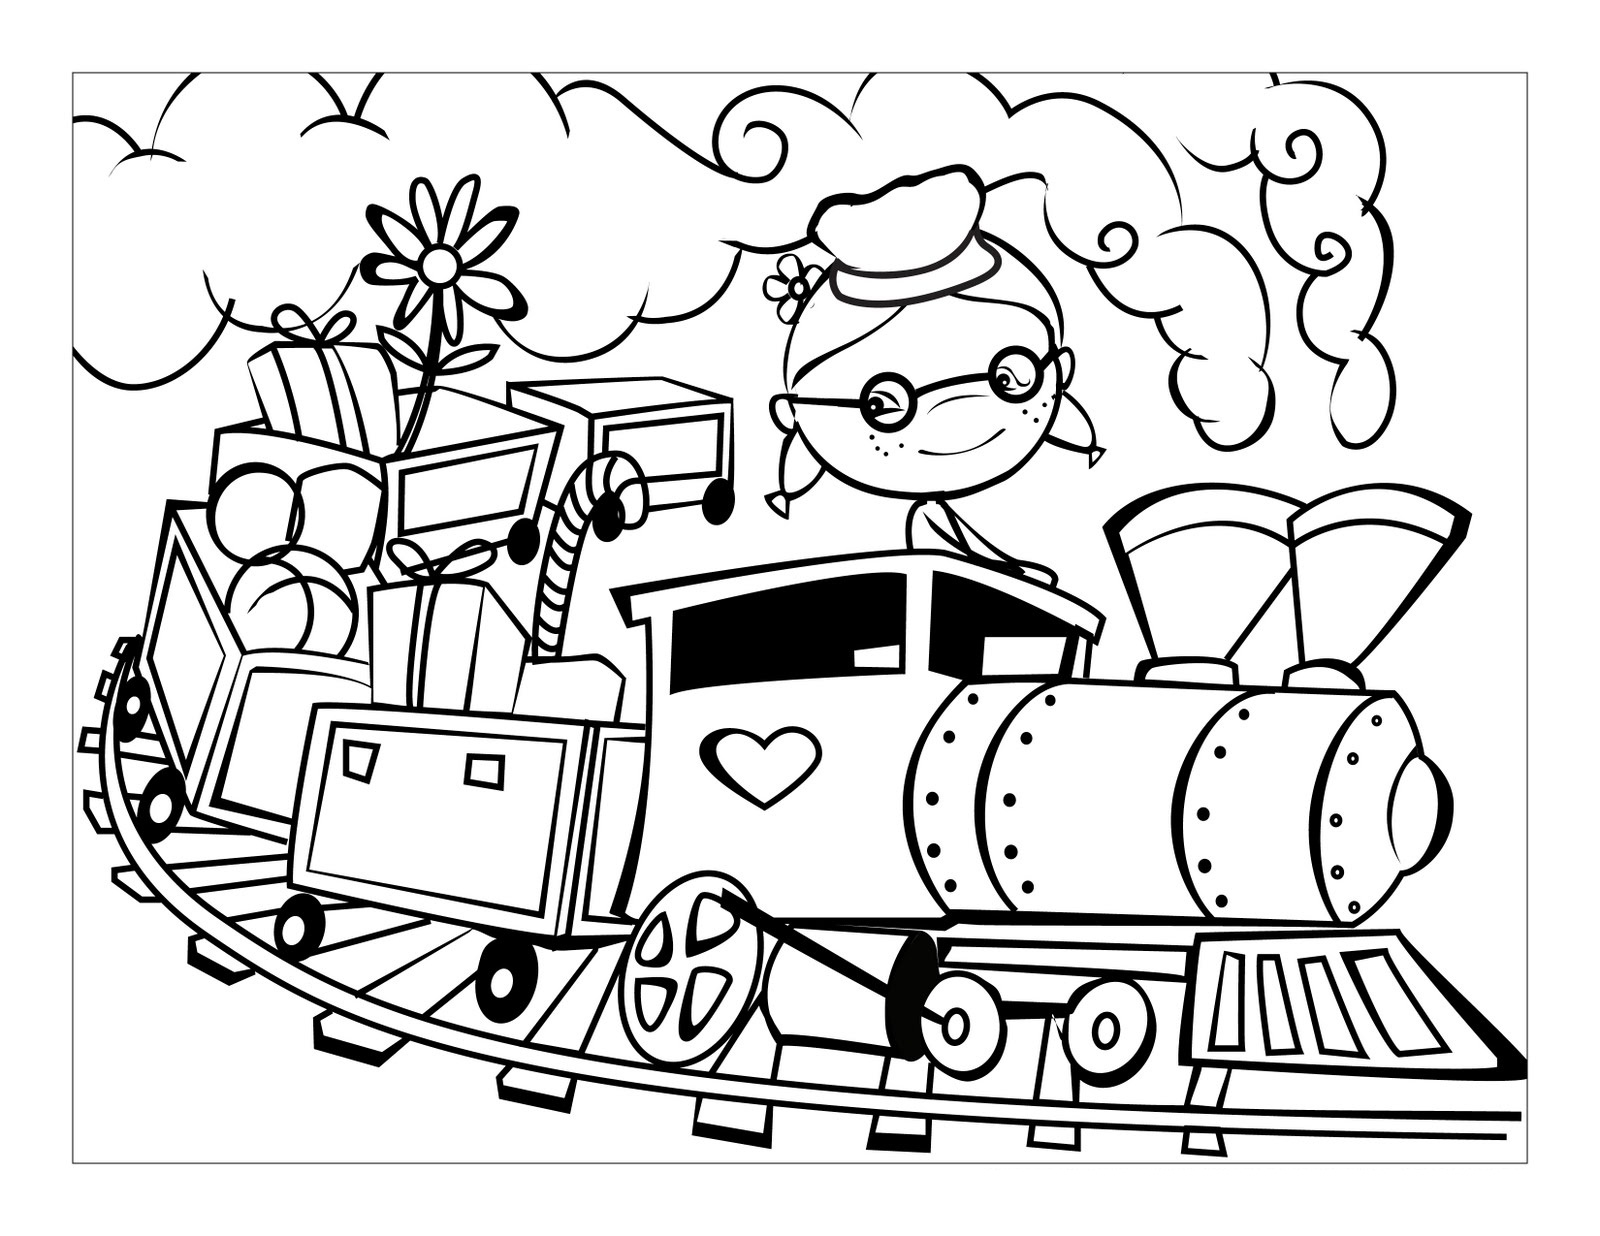 Free Coloring Pages Of A Car : Free printable train coloring pages for kids